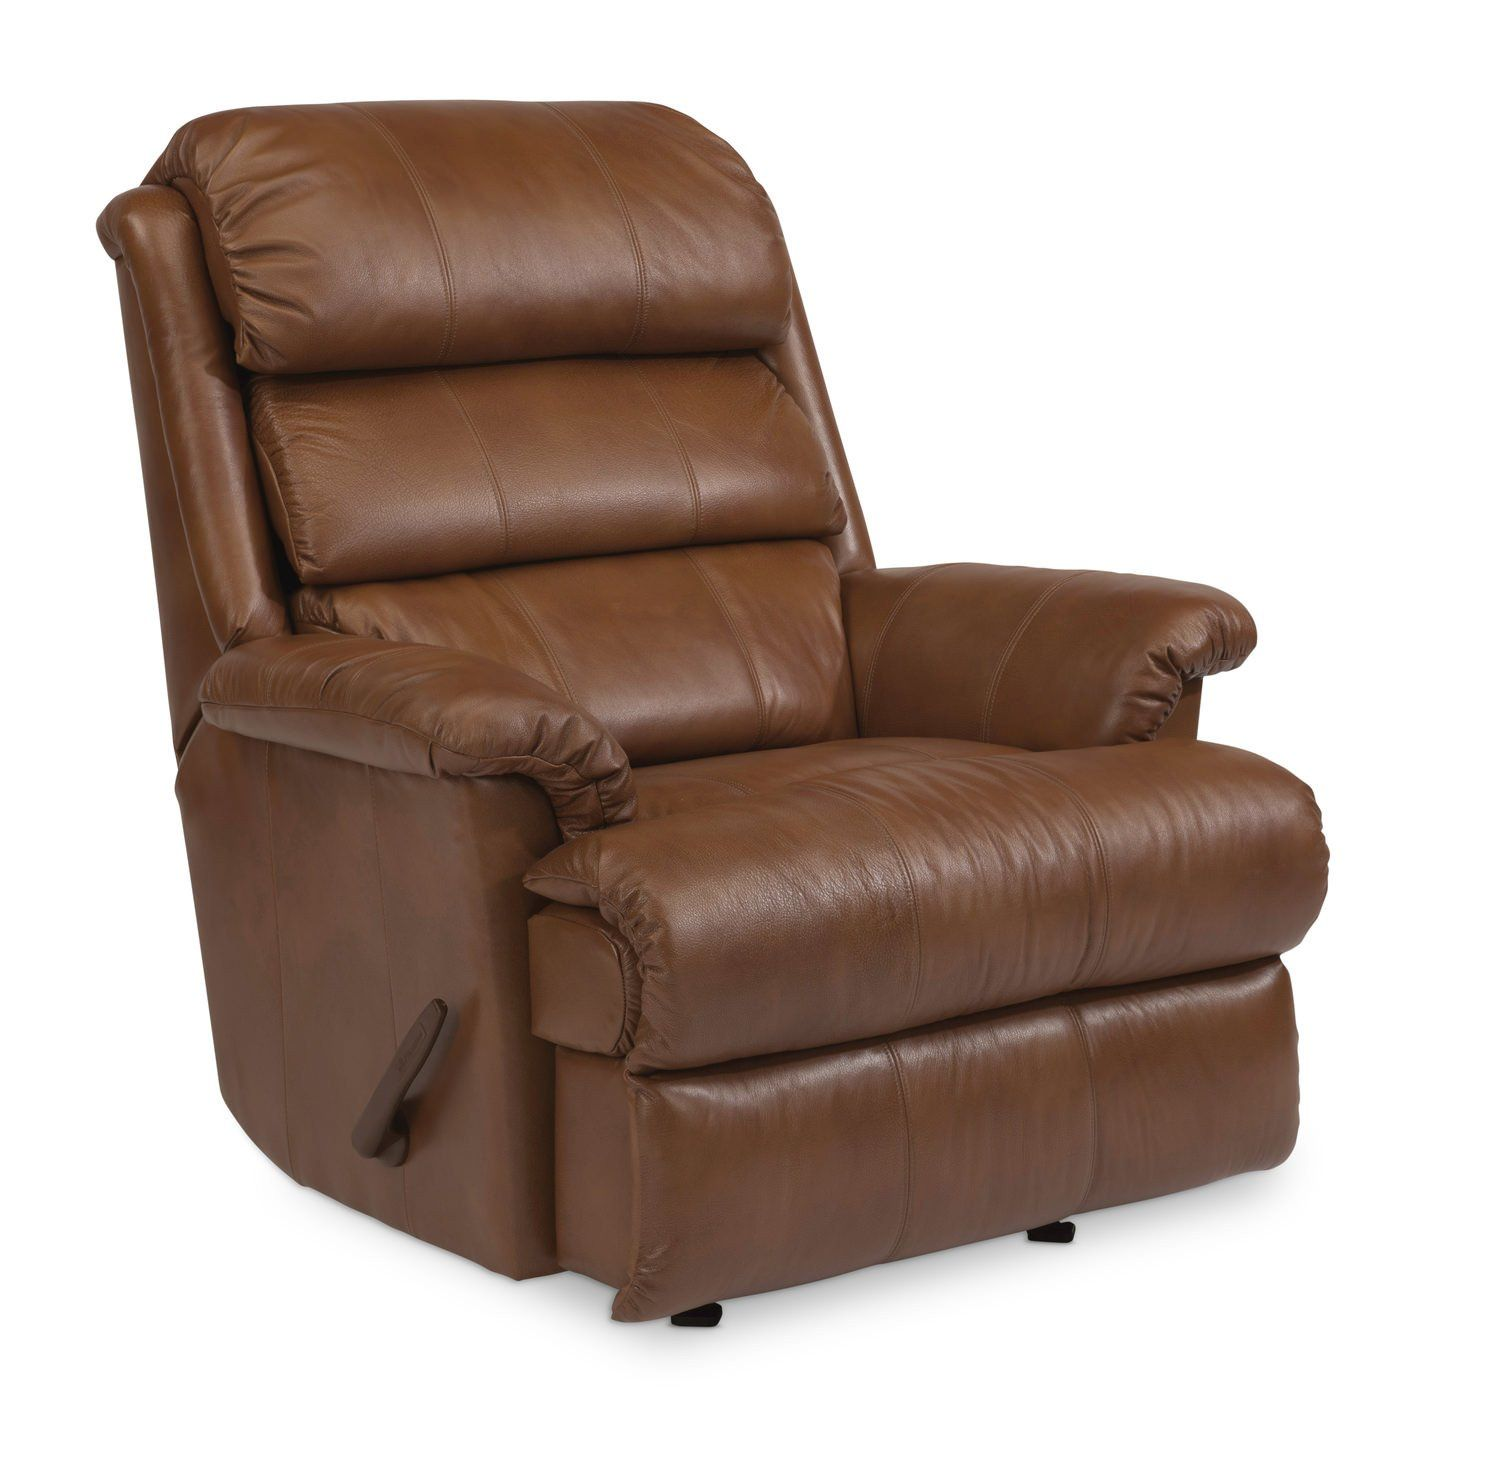 Yukon Leather Rocker Recliner Furniture Recliner